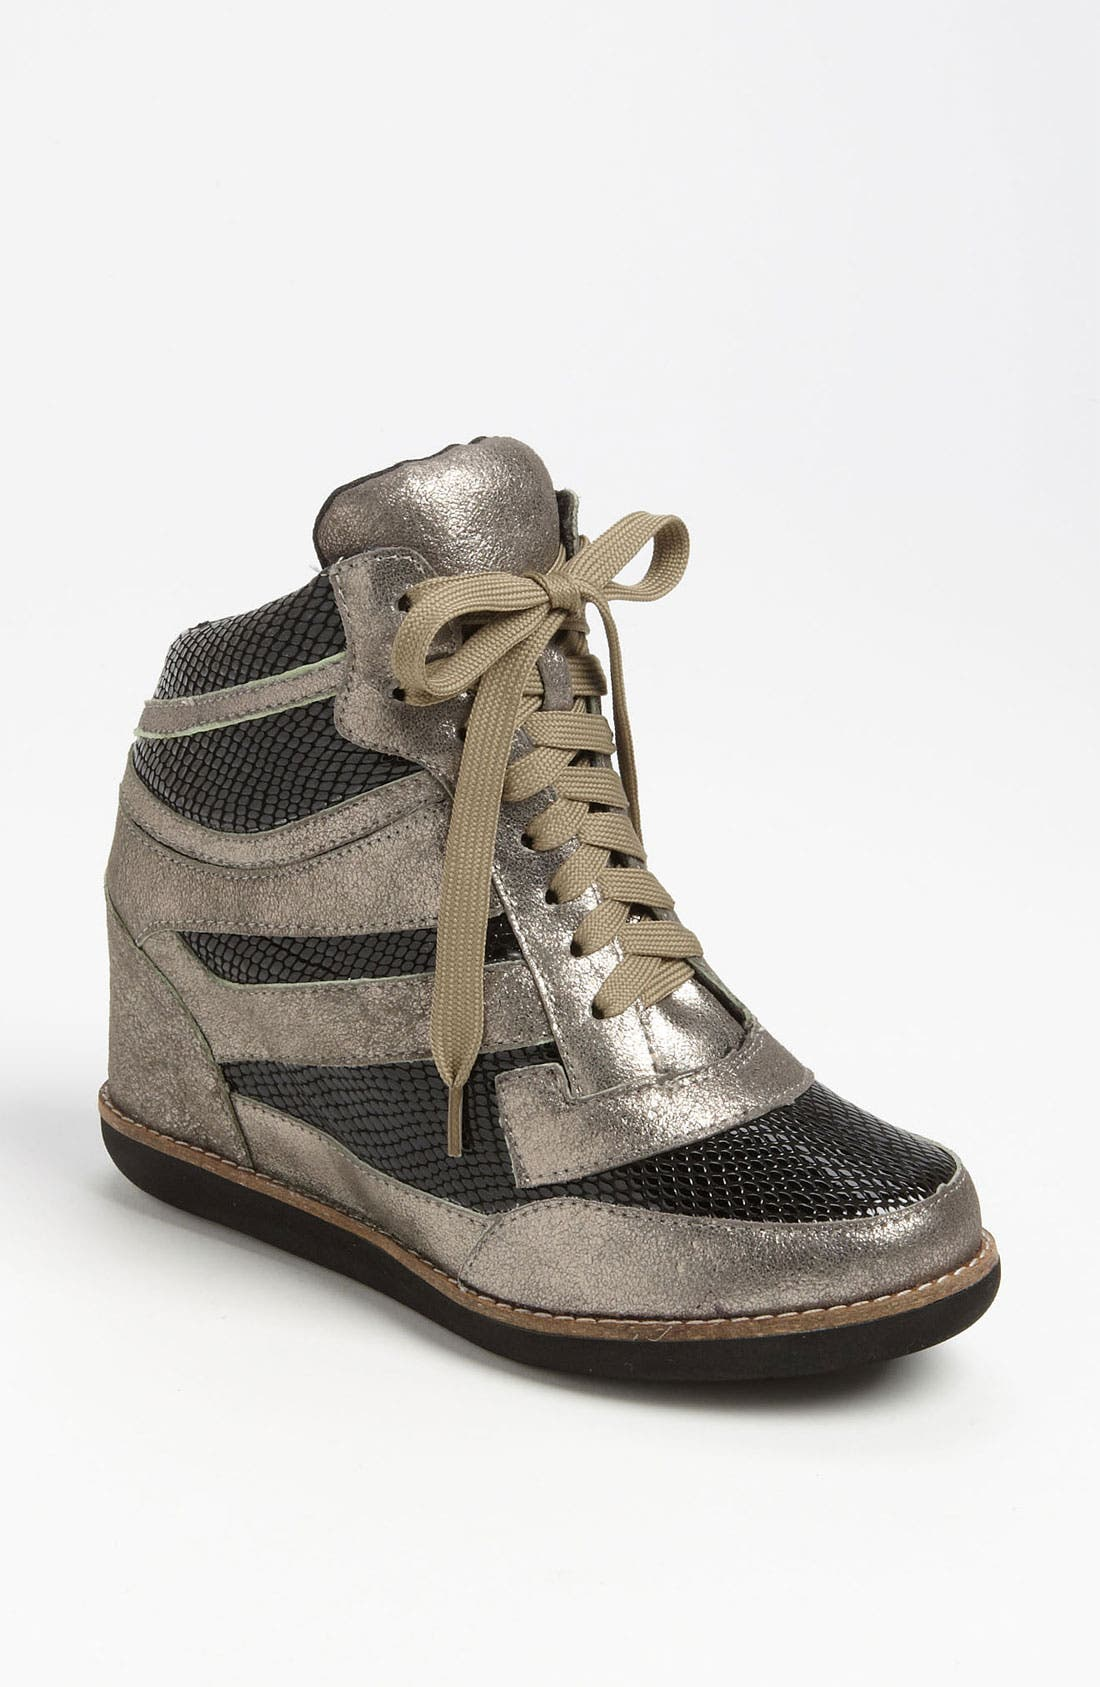 Main Image - Jeffrey Campbell 'Gio' Hidden Wedge Sneaker